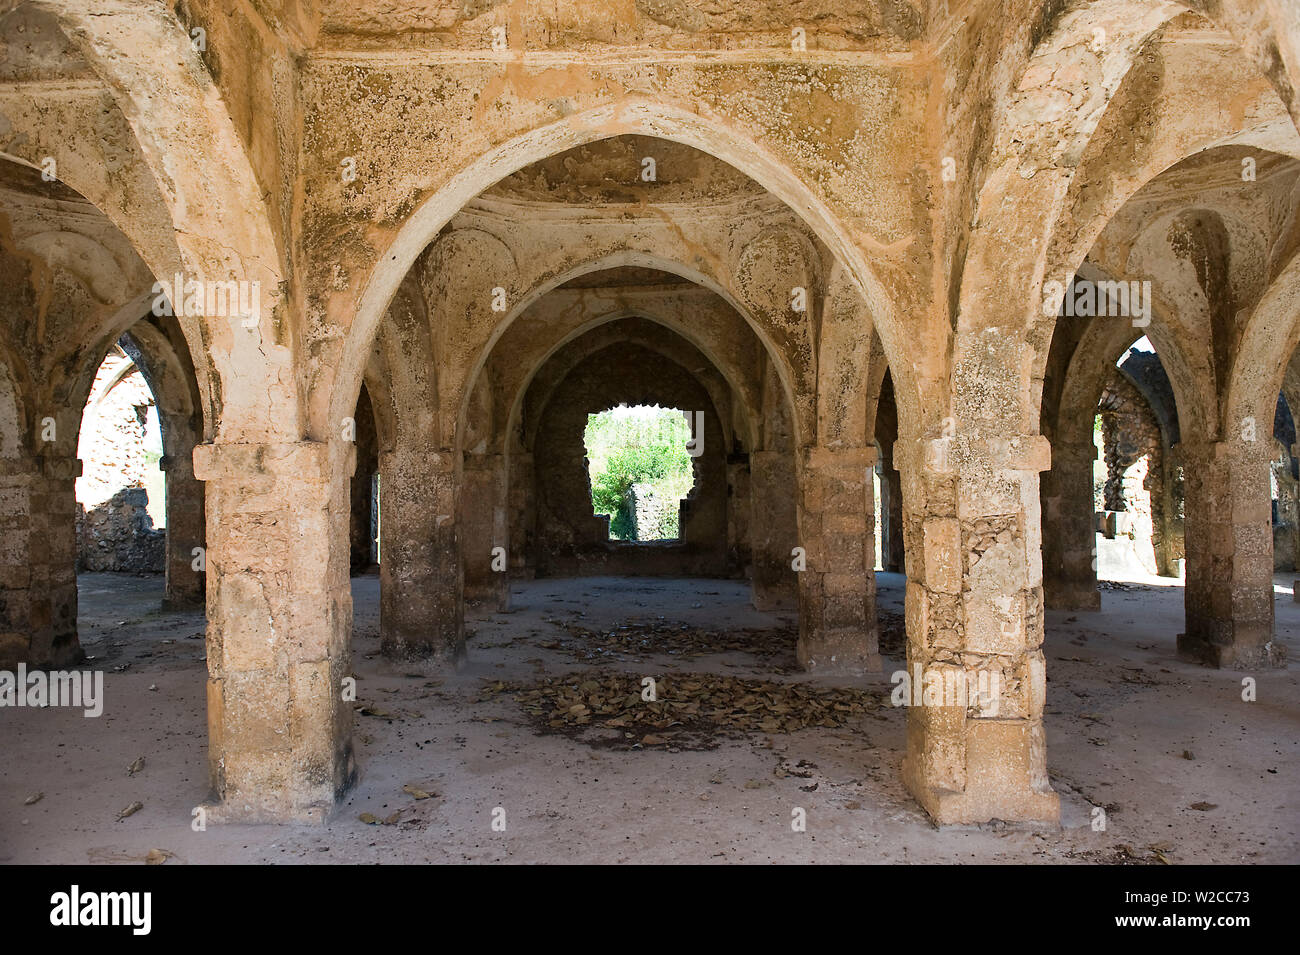 The Prayer Hall of the Great Mosque on Kilwa Kisiwani, built circa 10th Century, coast of Tanzania, oldest mosque on East African Coast. - Stock Image